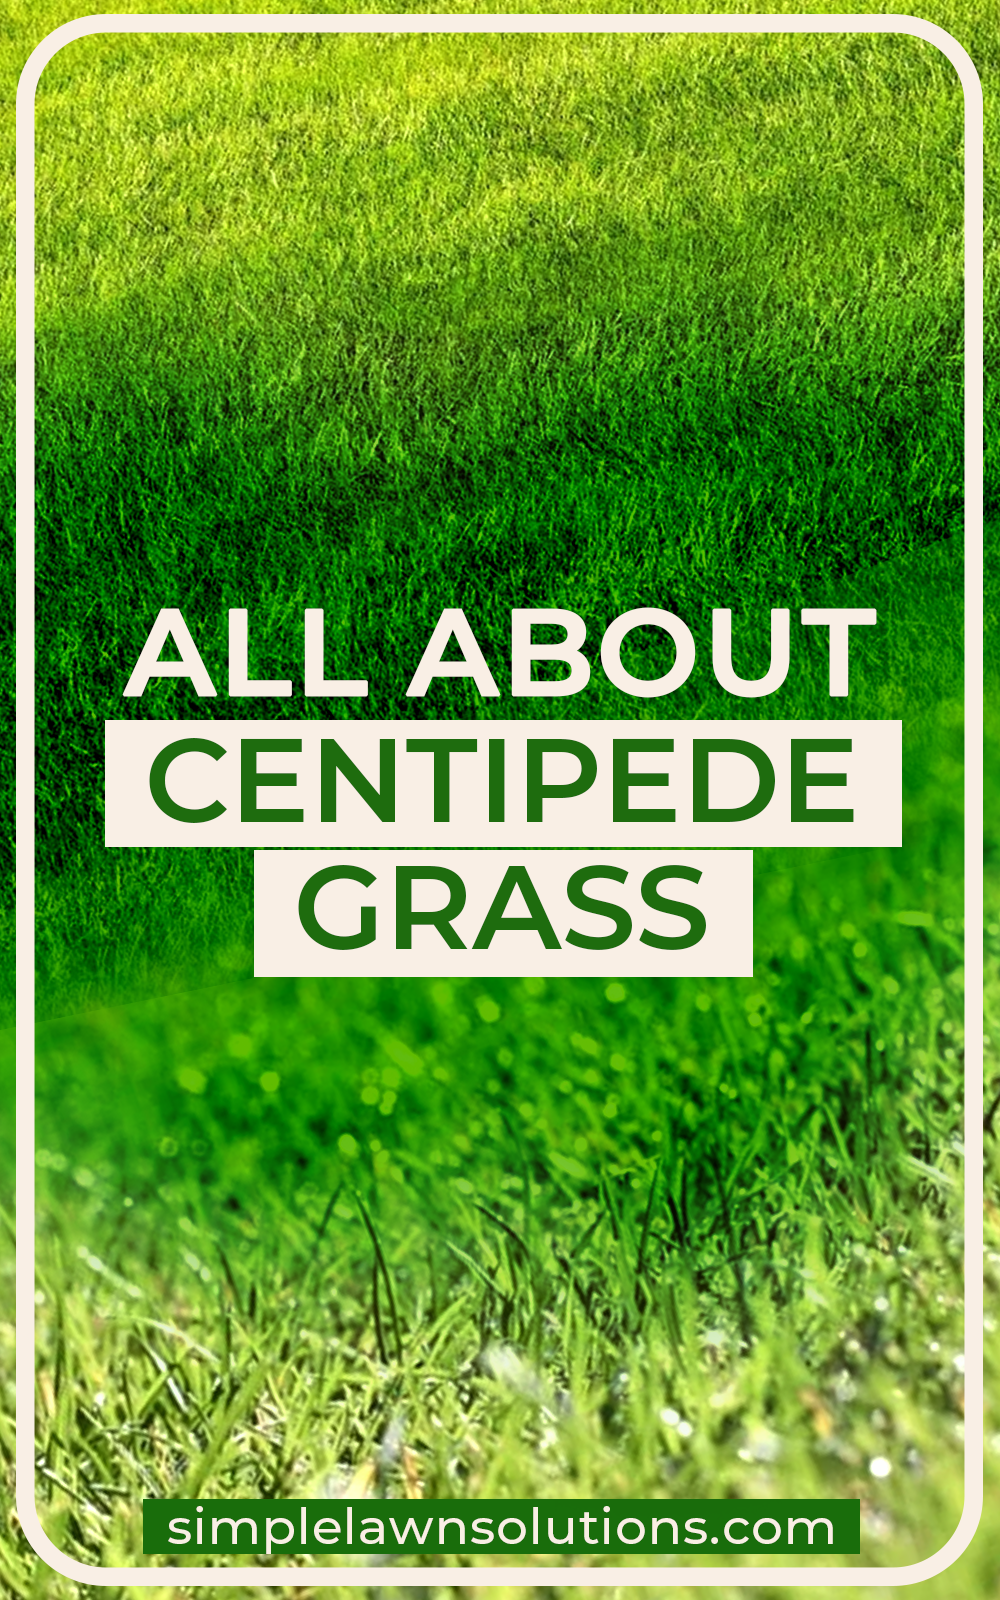 All About Centipede Grass In 2020 Centipede Grass Lawn Grass Types Warm Season Grass